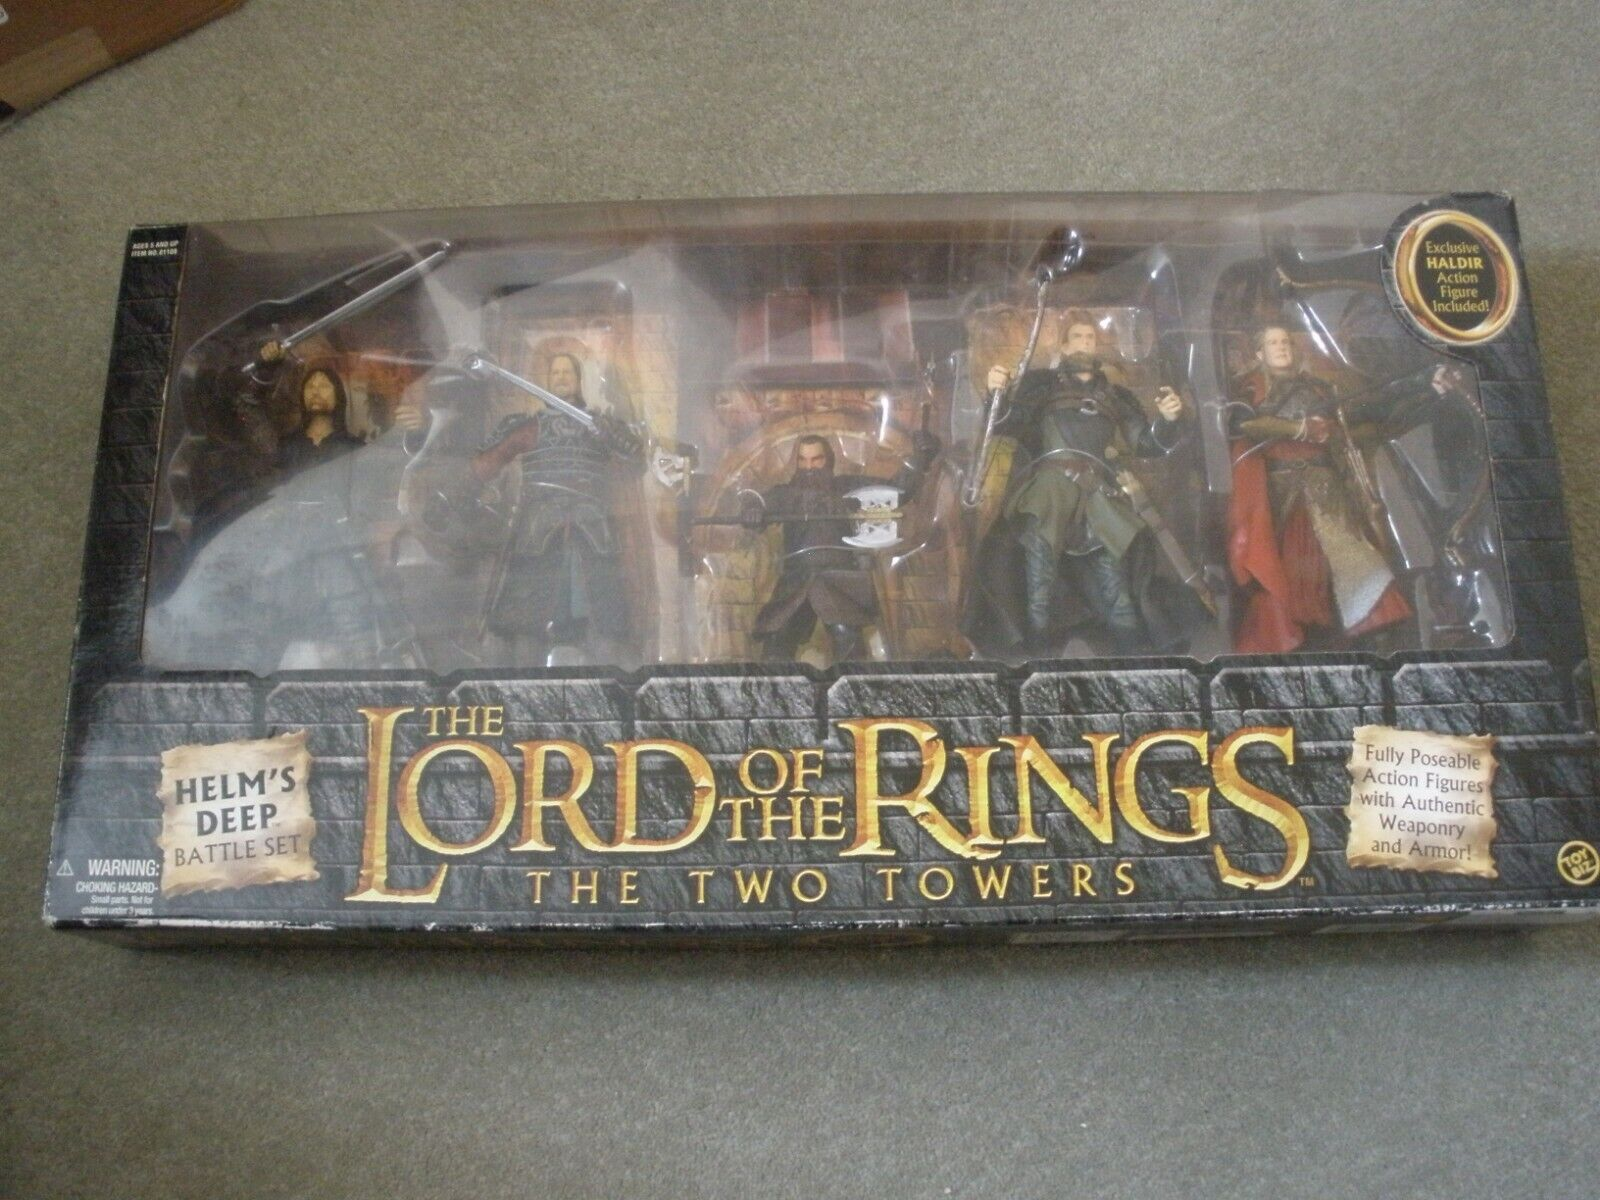 LORD OF THE RINGS - THE TWO TOWERS  HELM'S DEEP BATTLE SET - FIVE FIGURES